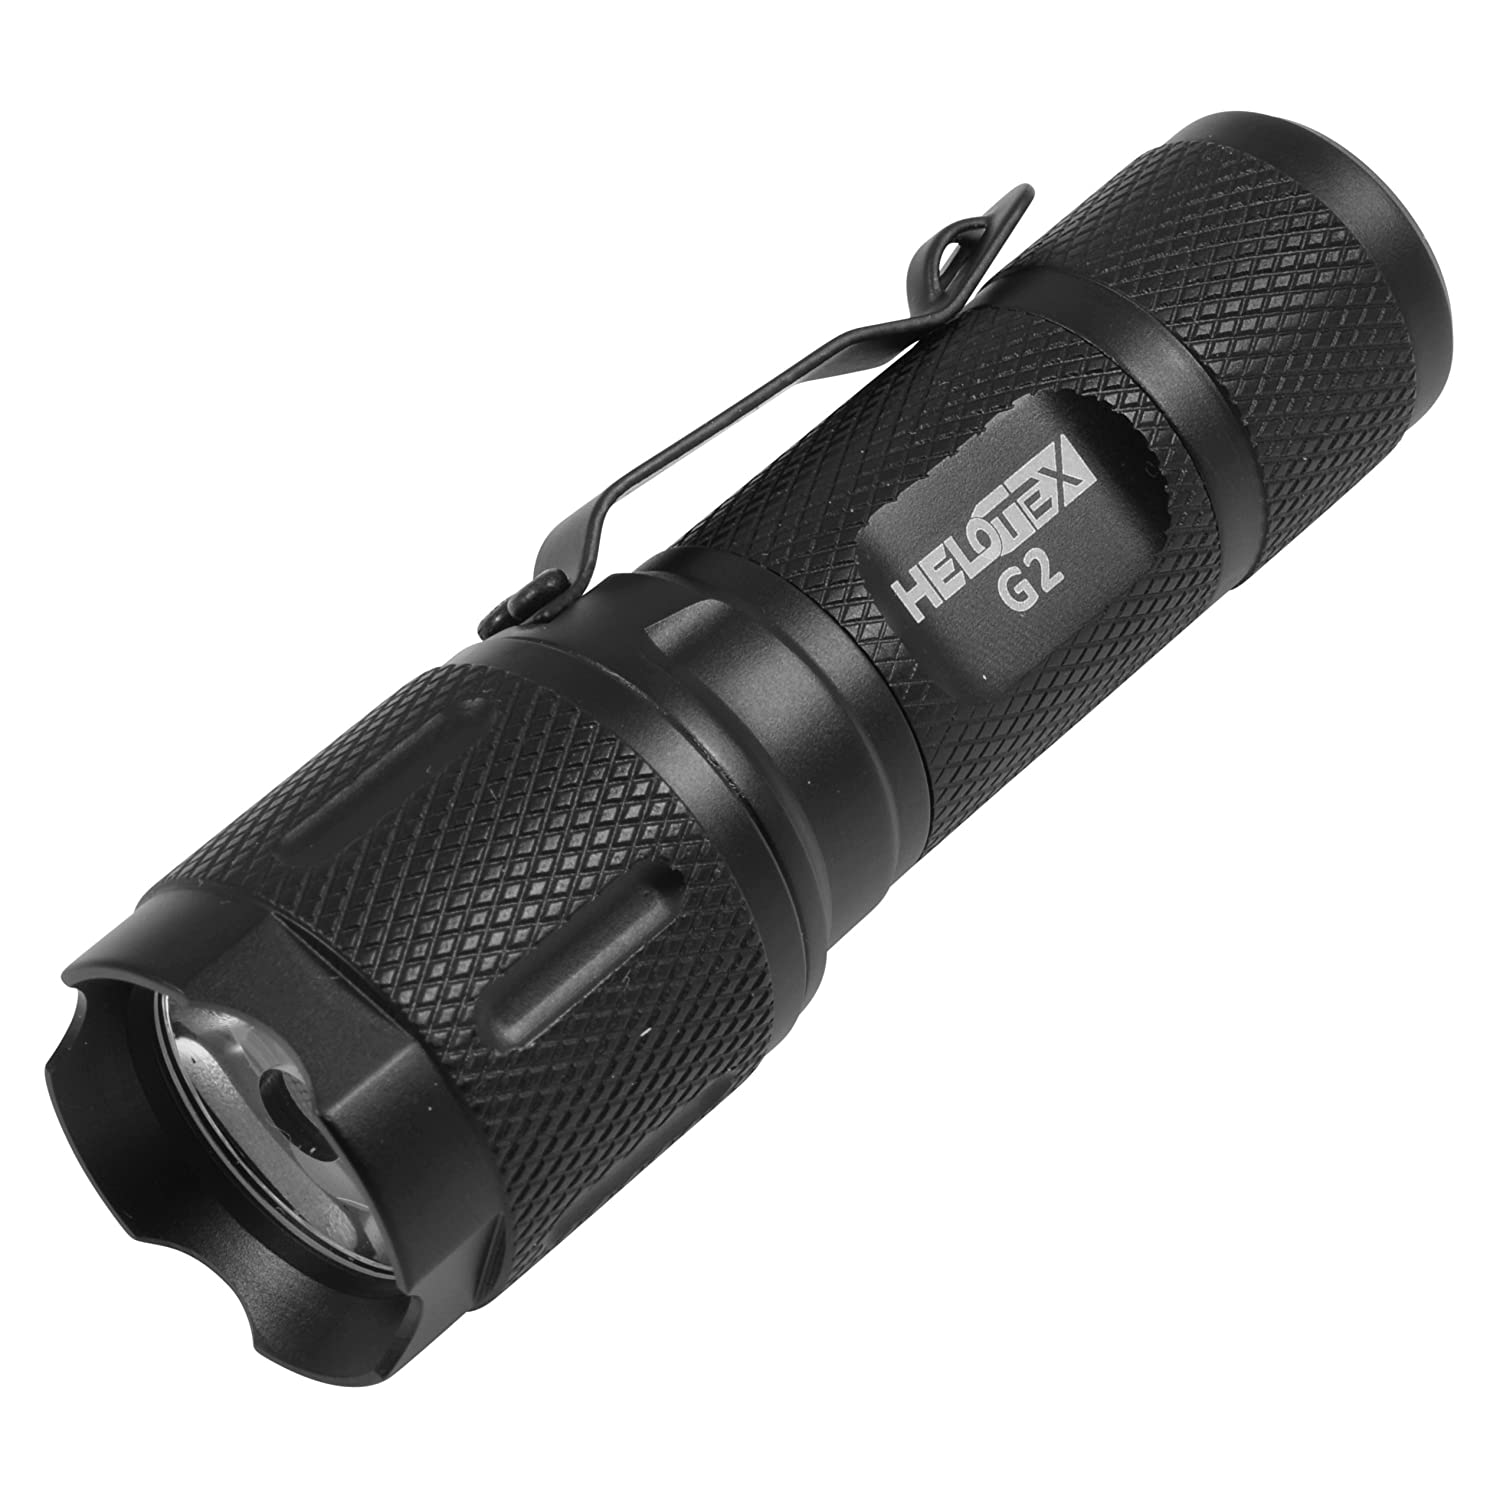 Helotex G2 Tactical Flashlight